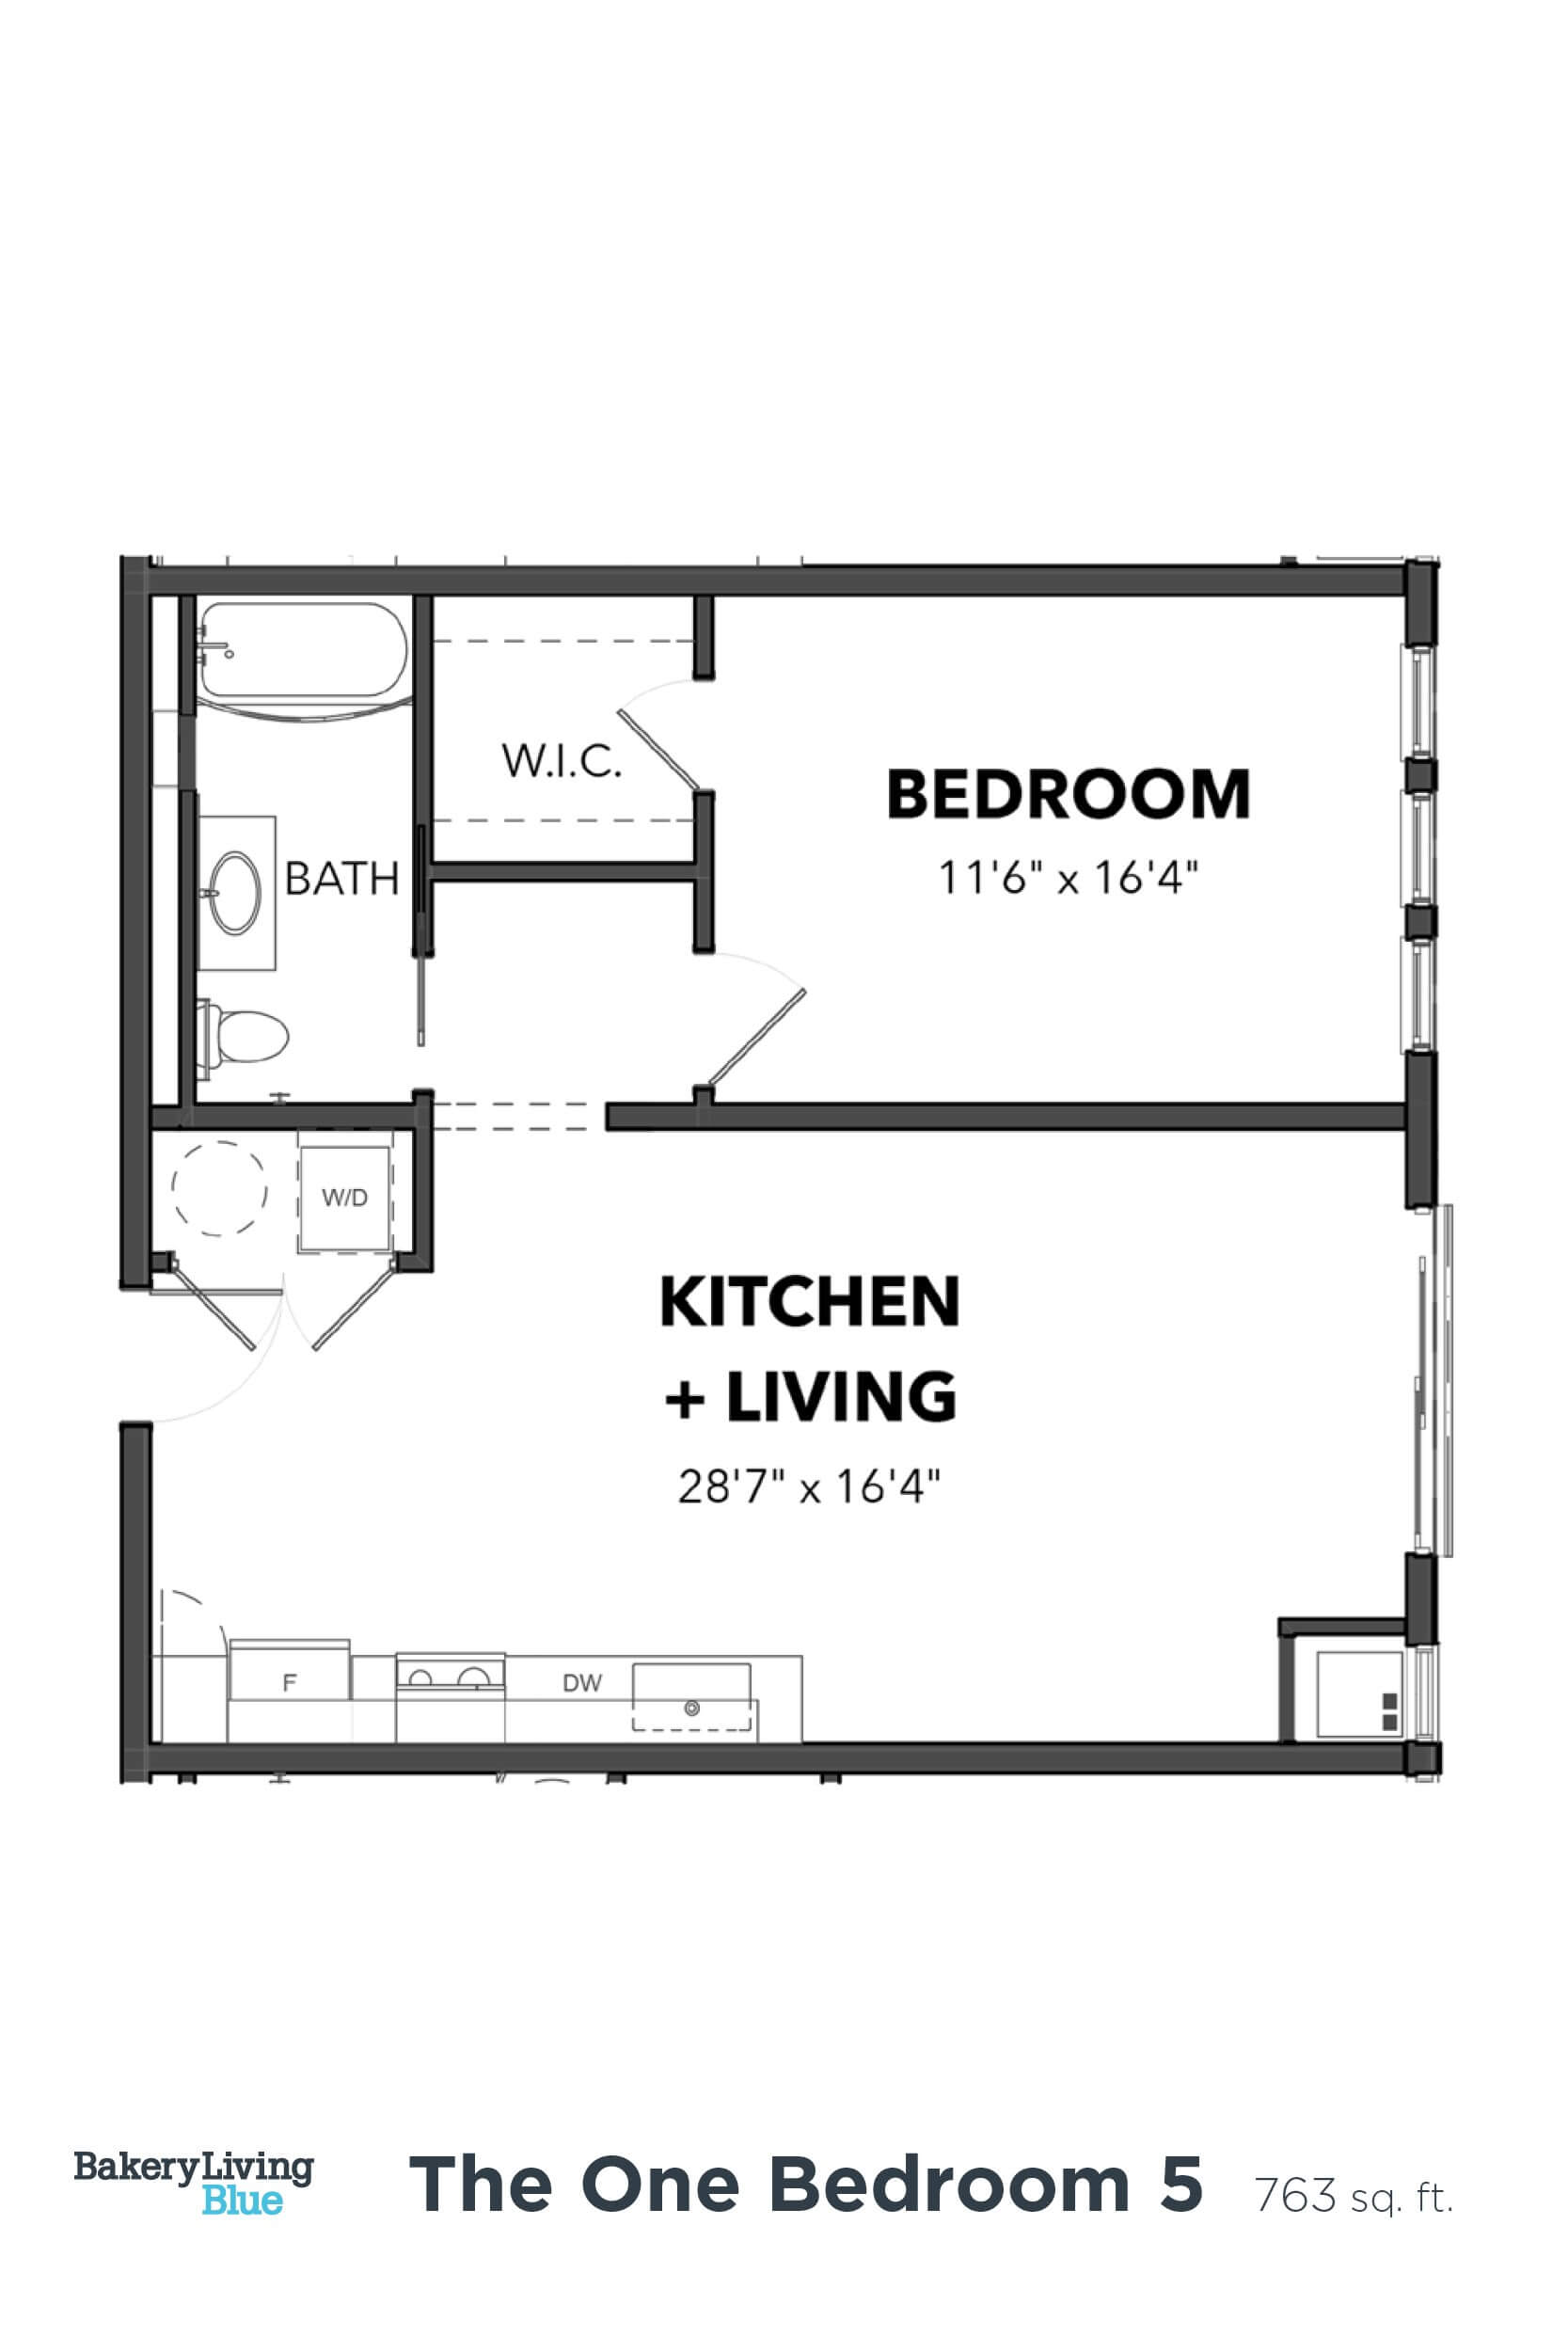 Floor Plan  Bakery Living One Bedroom 5, apartments in Pittsburgh, PA 15206